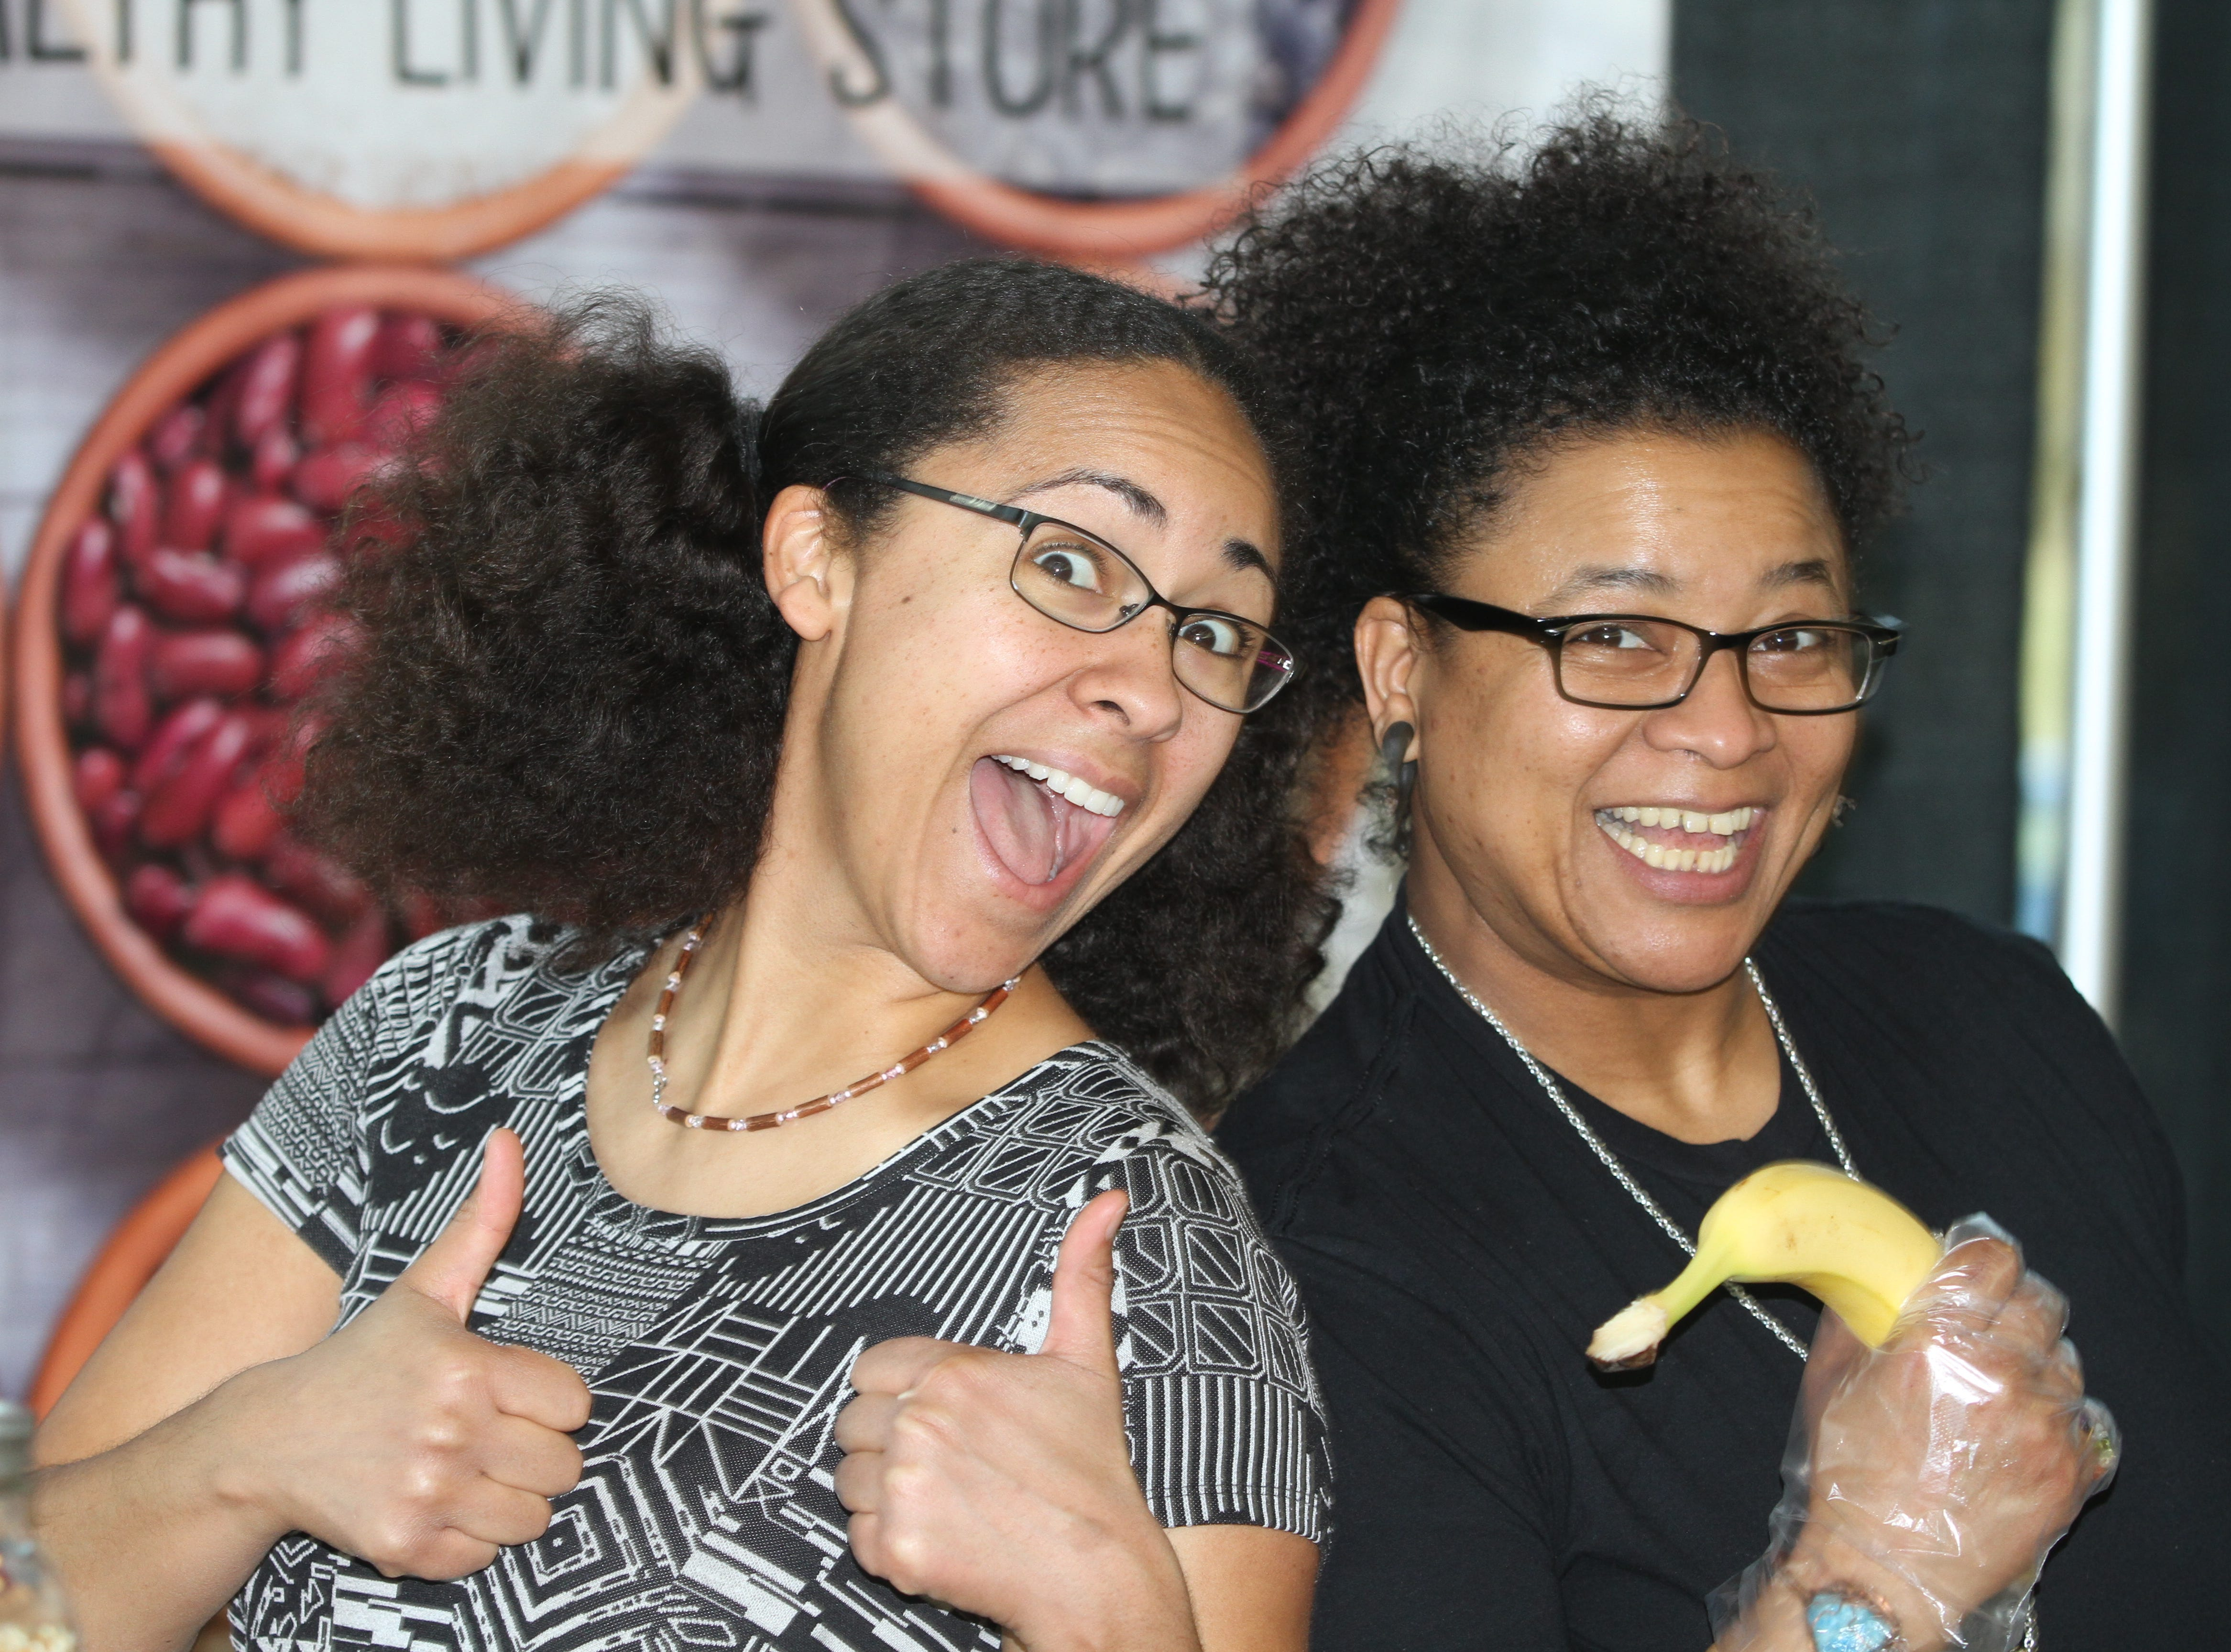 Shani Simms and Eileen Andrews offered up Seasons Market treats, chocolate covered bananas, and lots of enthusiasm during the 7th Annual Chocolate Affair at Wilma Rudolph Event Center Saturday, February 2, 2019 . The sold-out event saw hundreds of guests enjoying chocolate creations from more than a dozen local and national vendors.